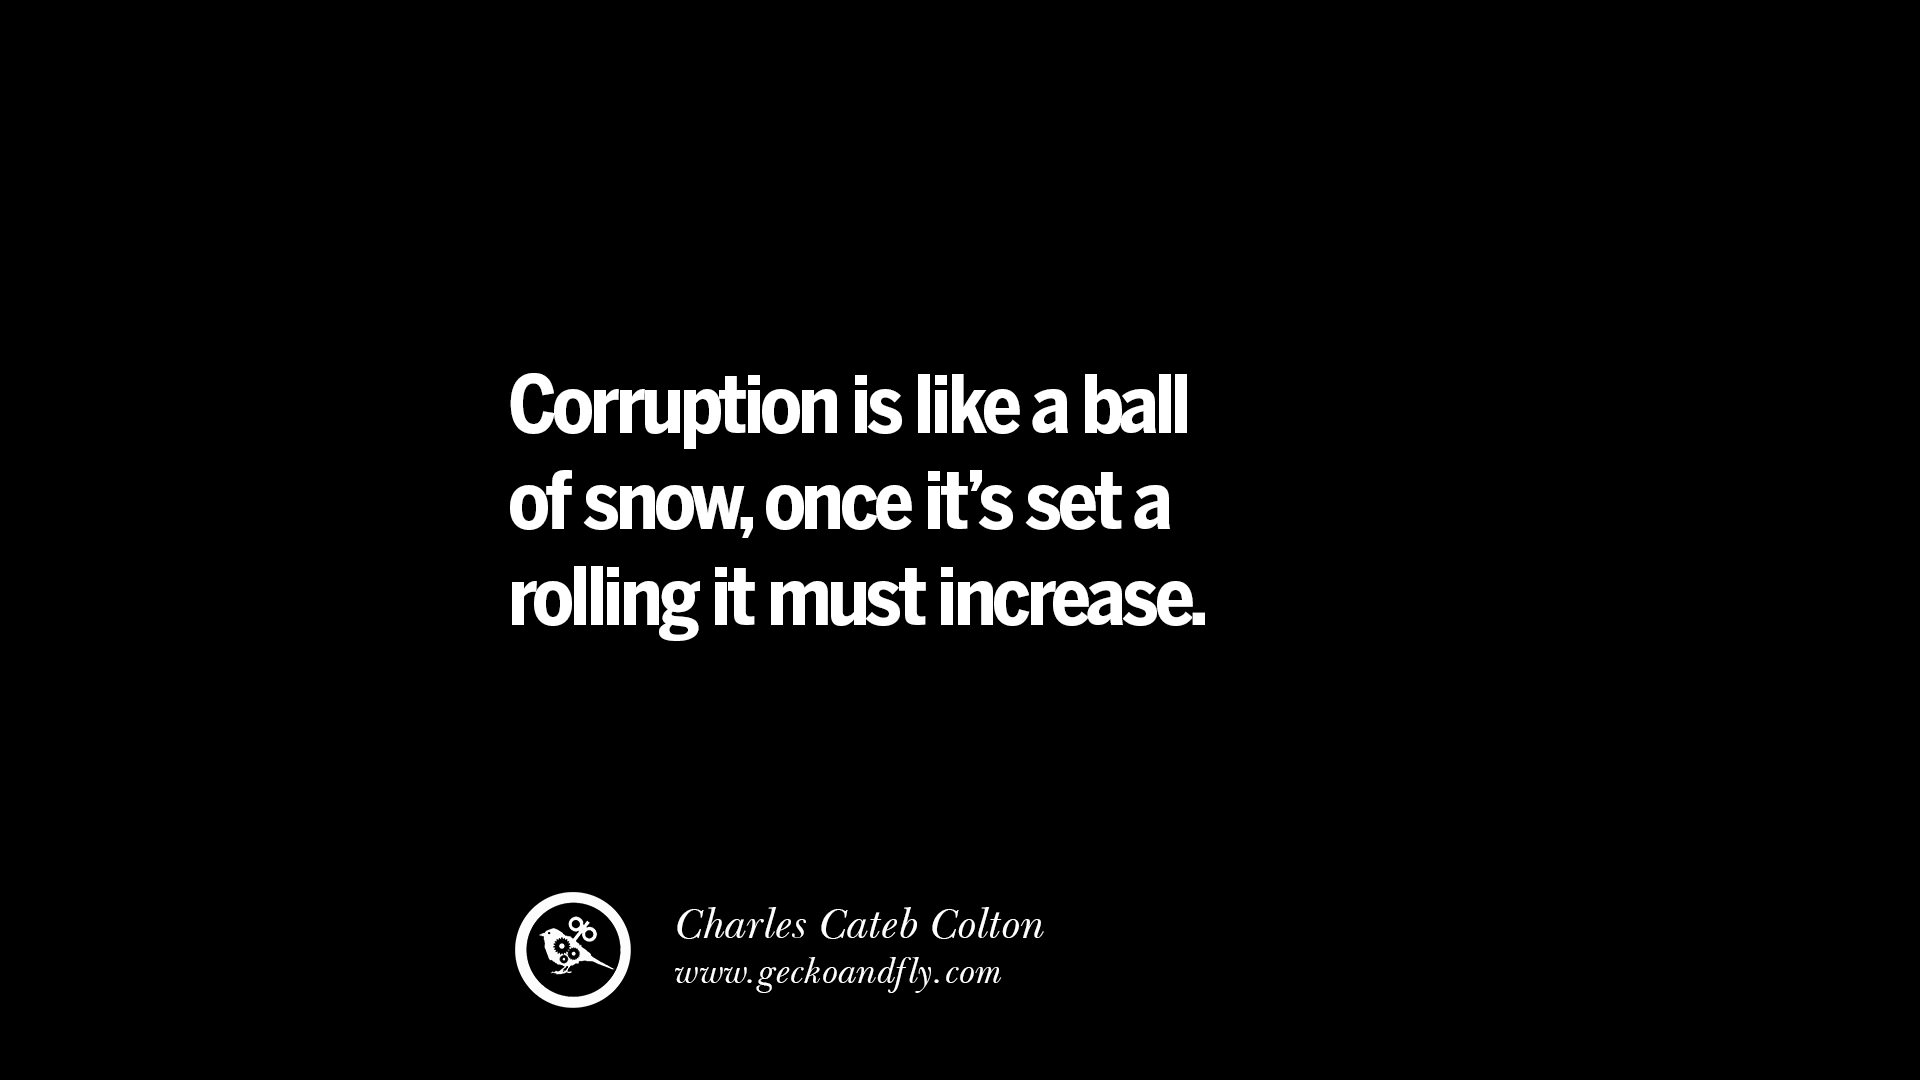 """essay corruption is like a ball of snow Political corruption essaythe corruption in argentine and possible solutions """"corruption is like a ball of snow, once it's set a rolling it."""